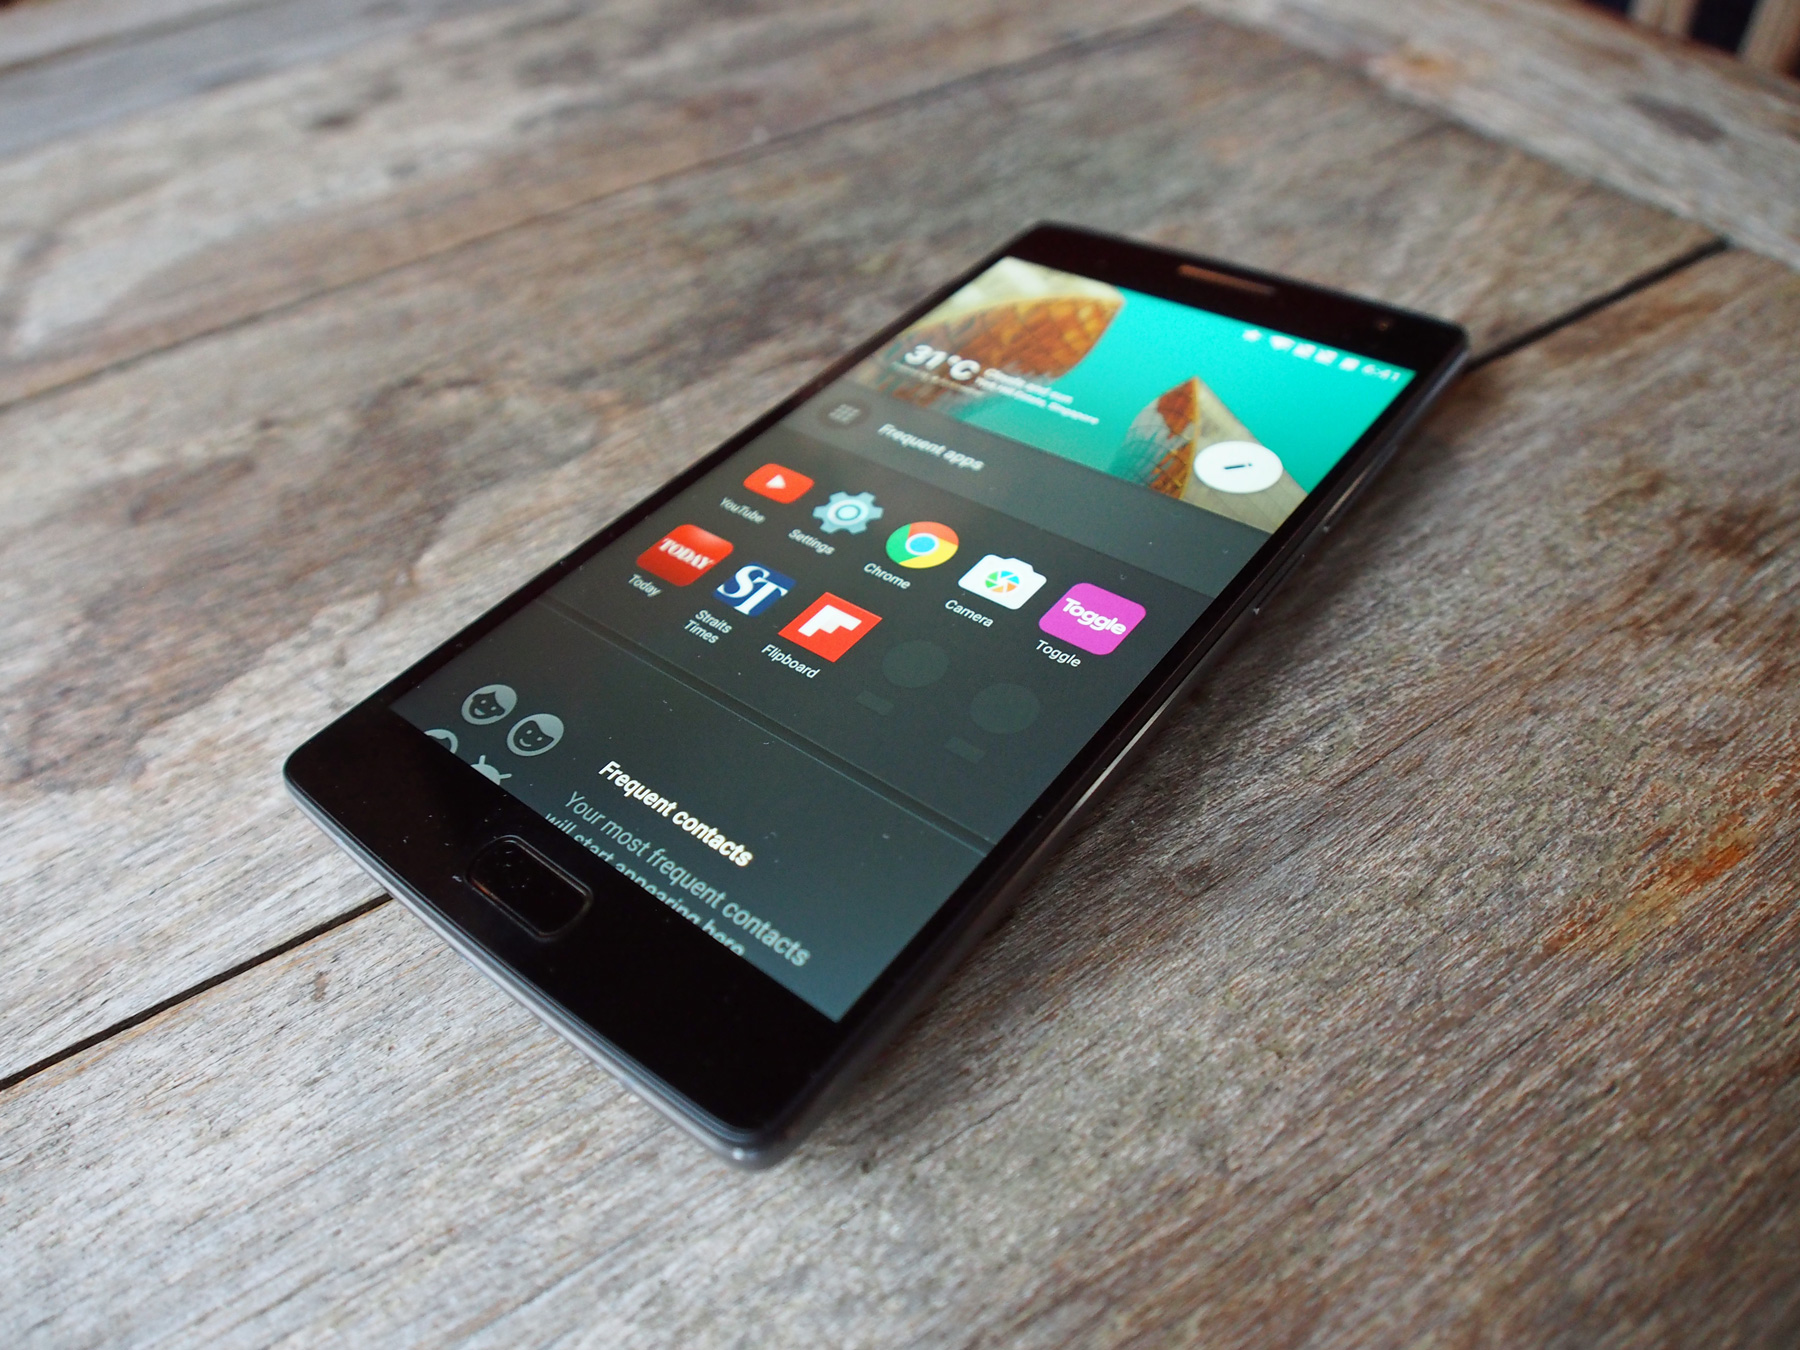 The OnePlus 2's front view.